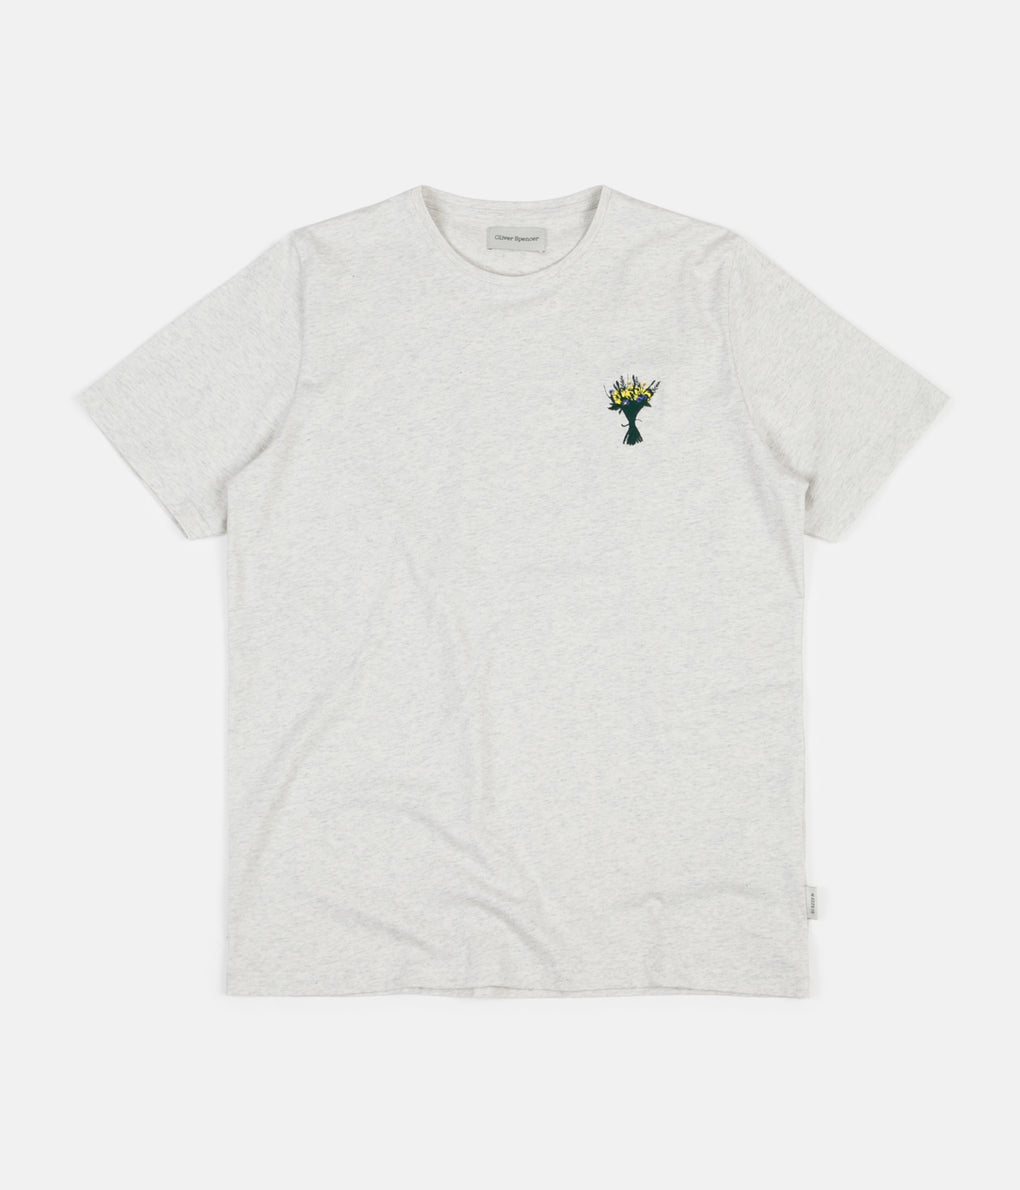 Oliver Spencer Wild Flower Embroidery T-Shirt - Warren Oatmeal